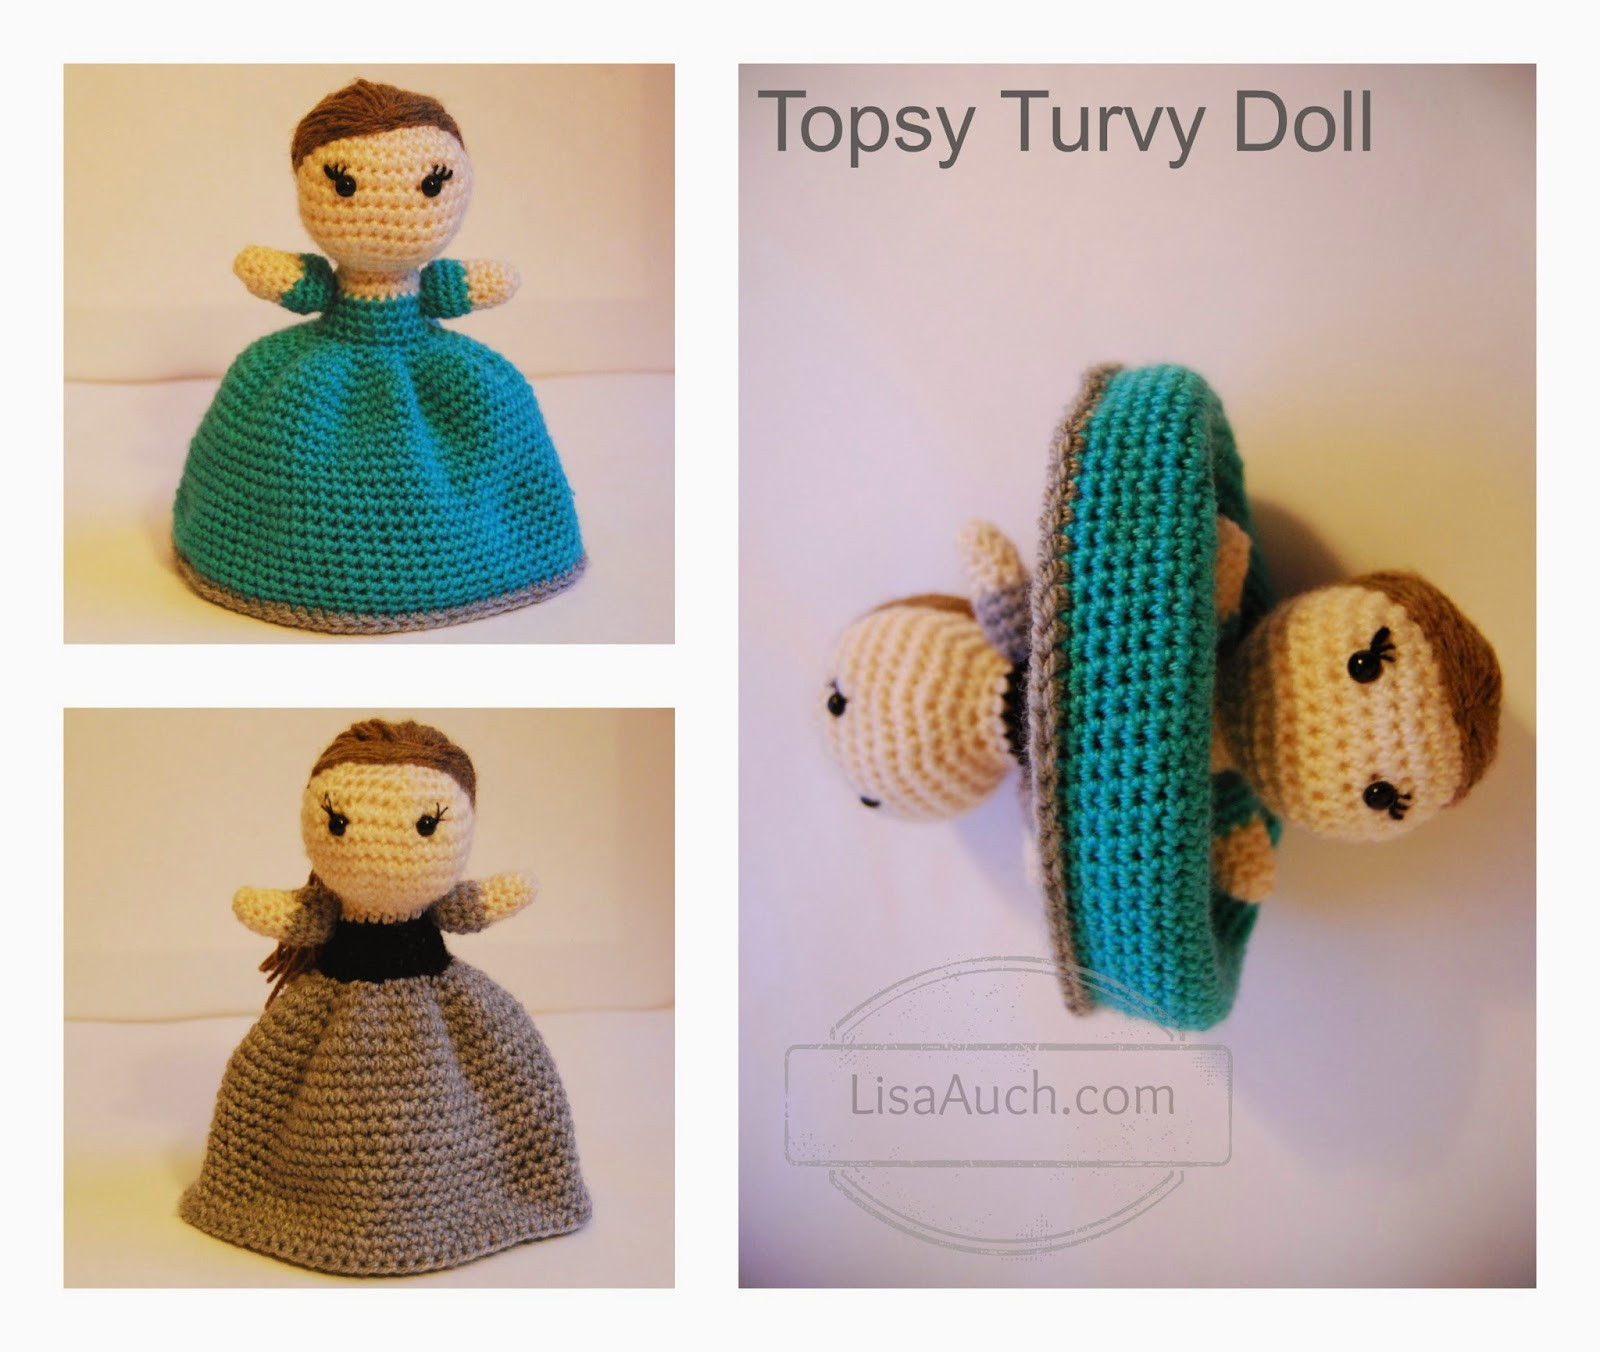 Topsy Turvy Doll Pattern Unique Free Crochet Amigurumi Doll Pattern A Basic Crochet Doll Of Marvelous 49 Pics topsy Turvy Doll Pattern